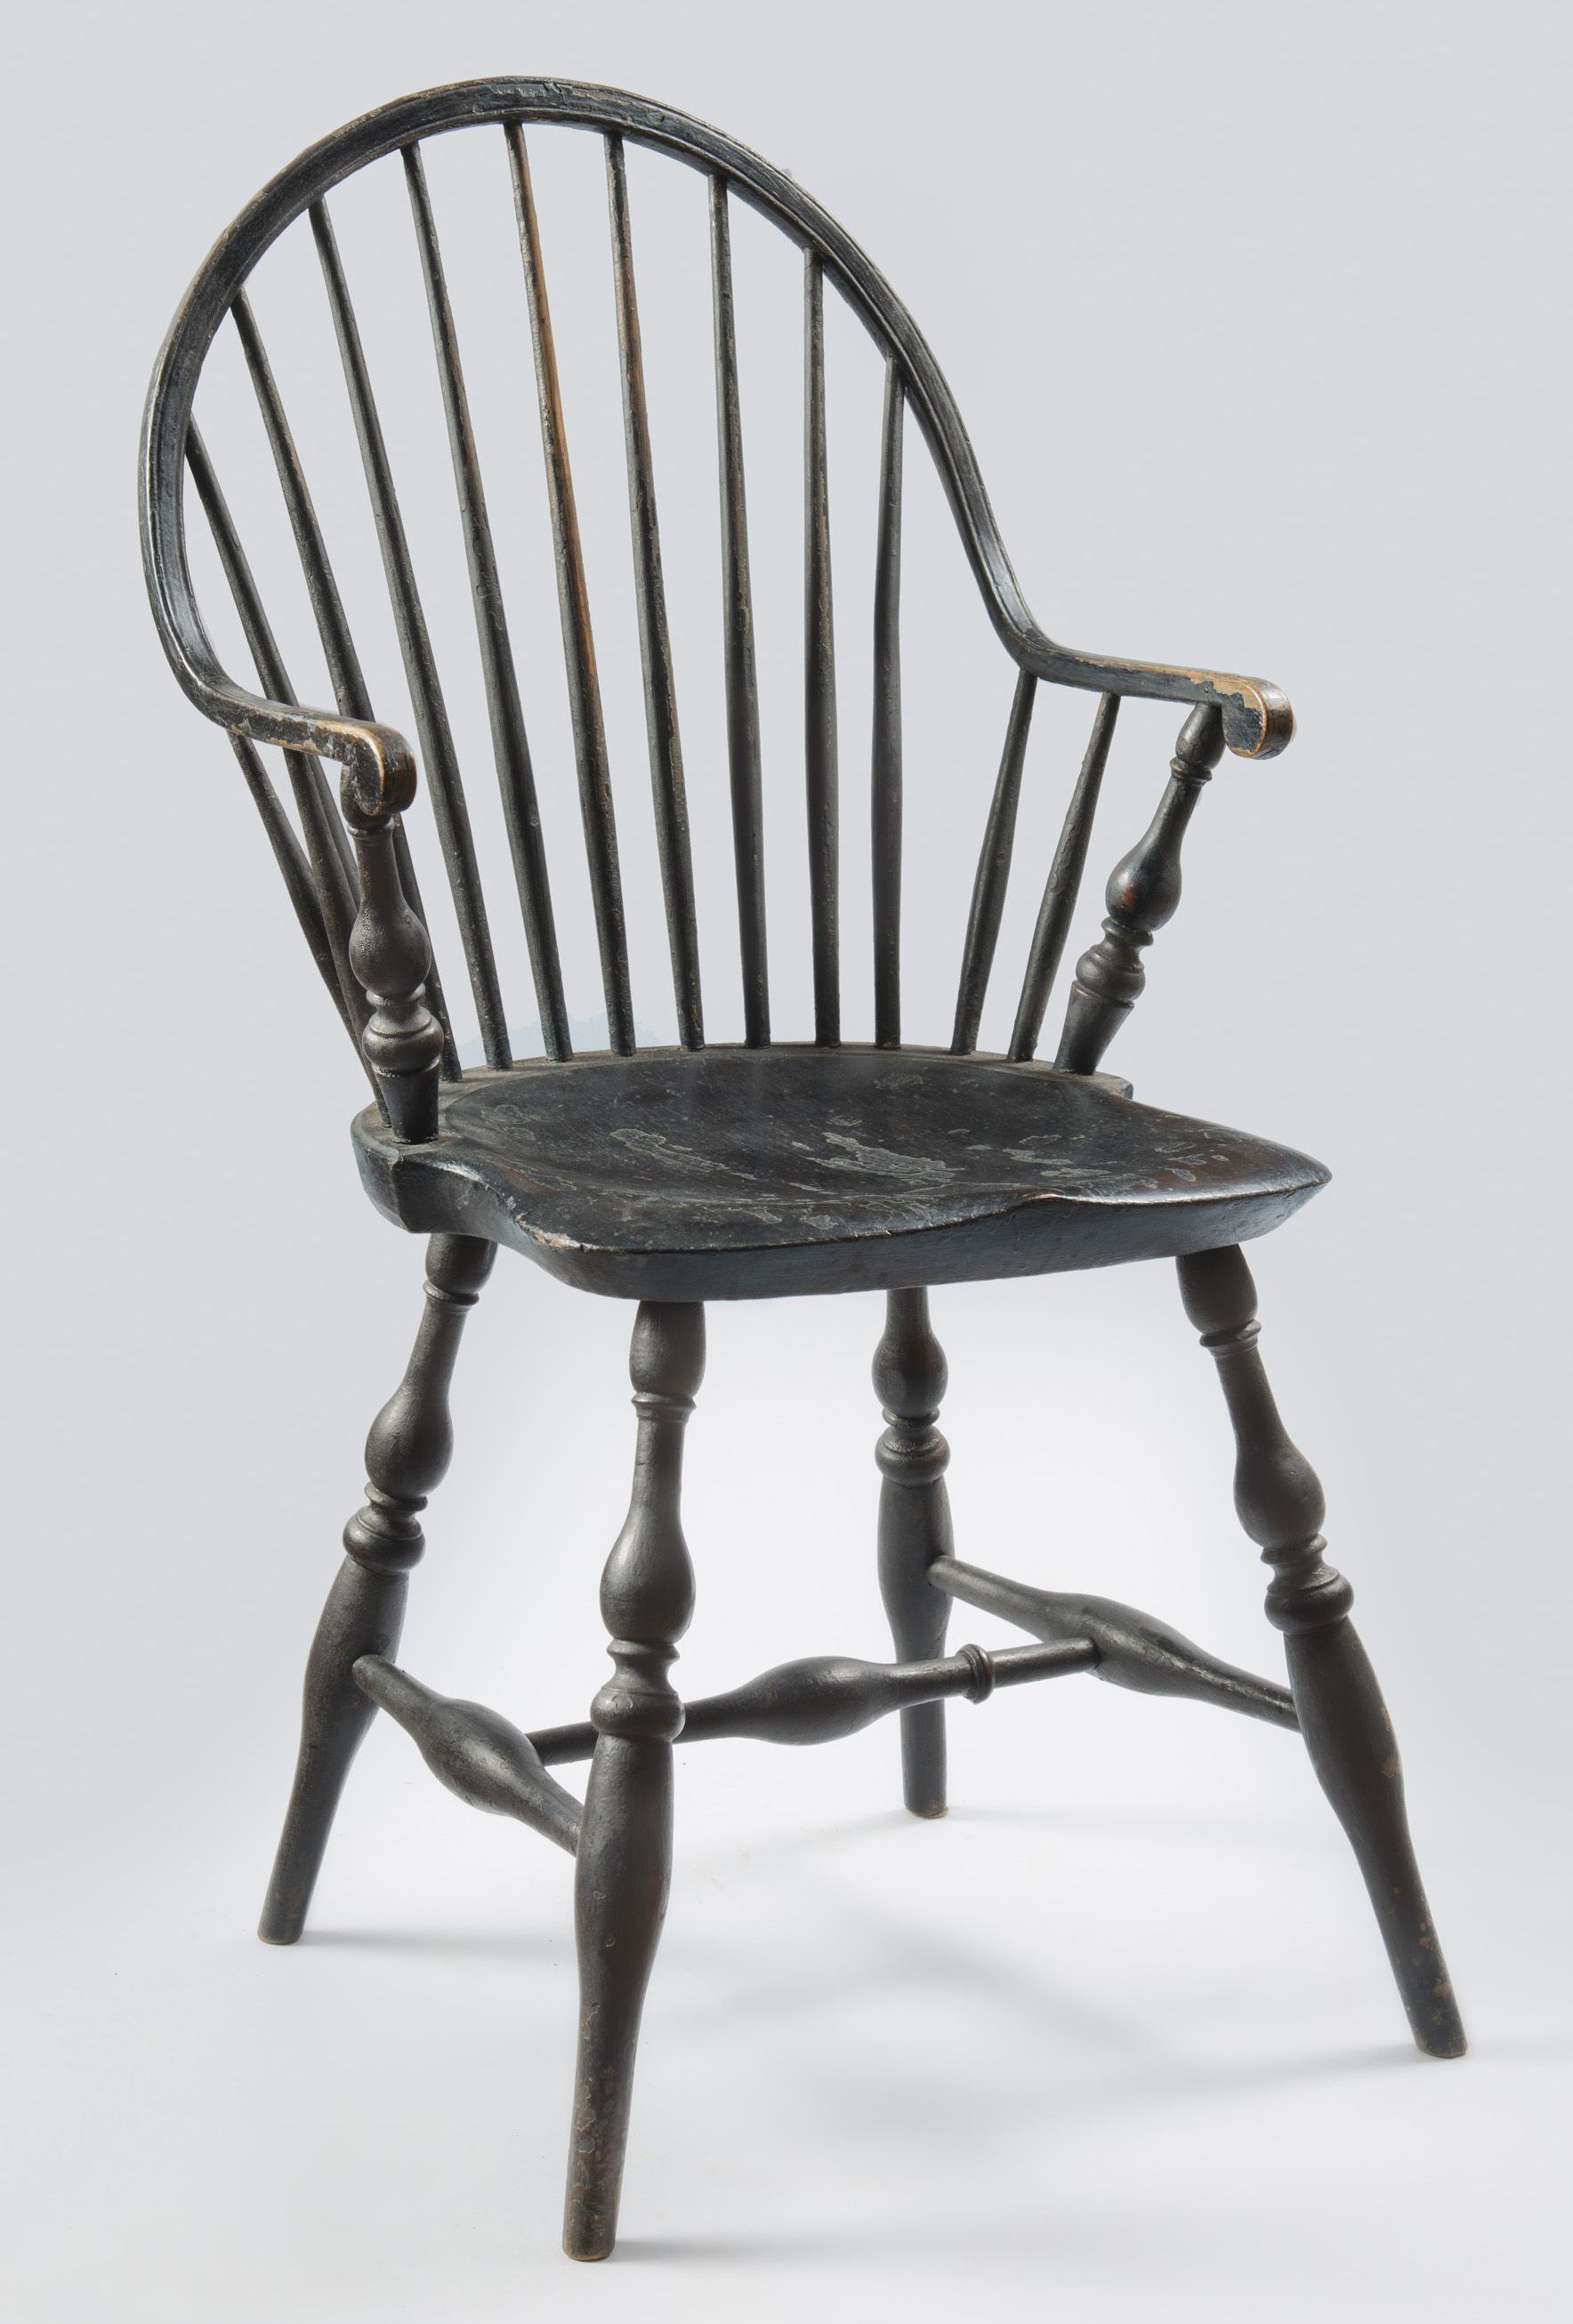 Blackpainted windsor continuous armchair with rare